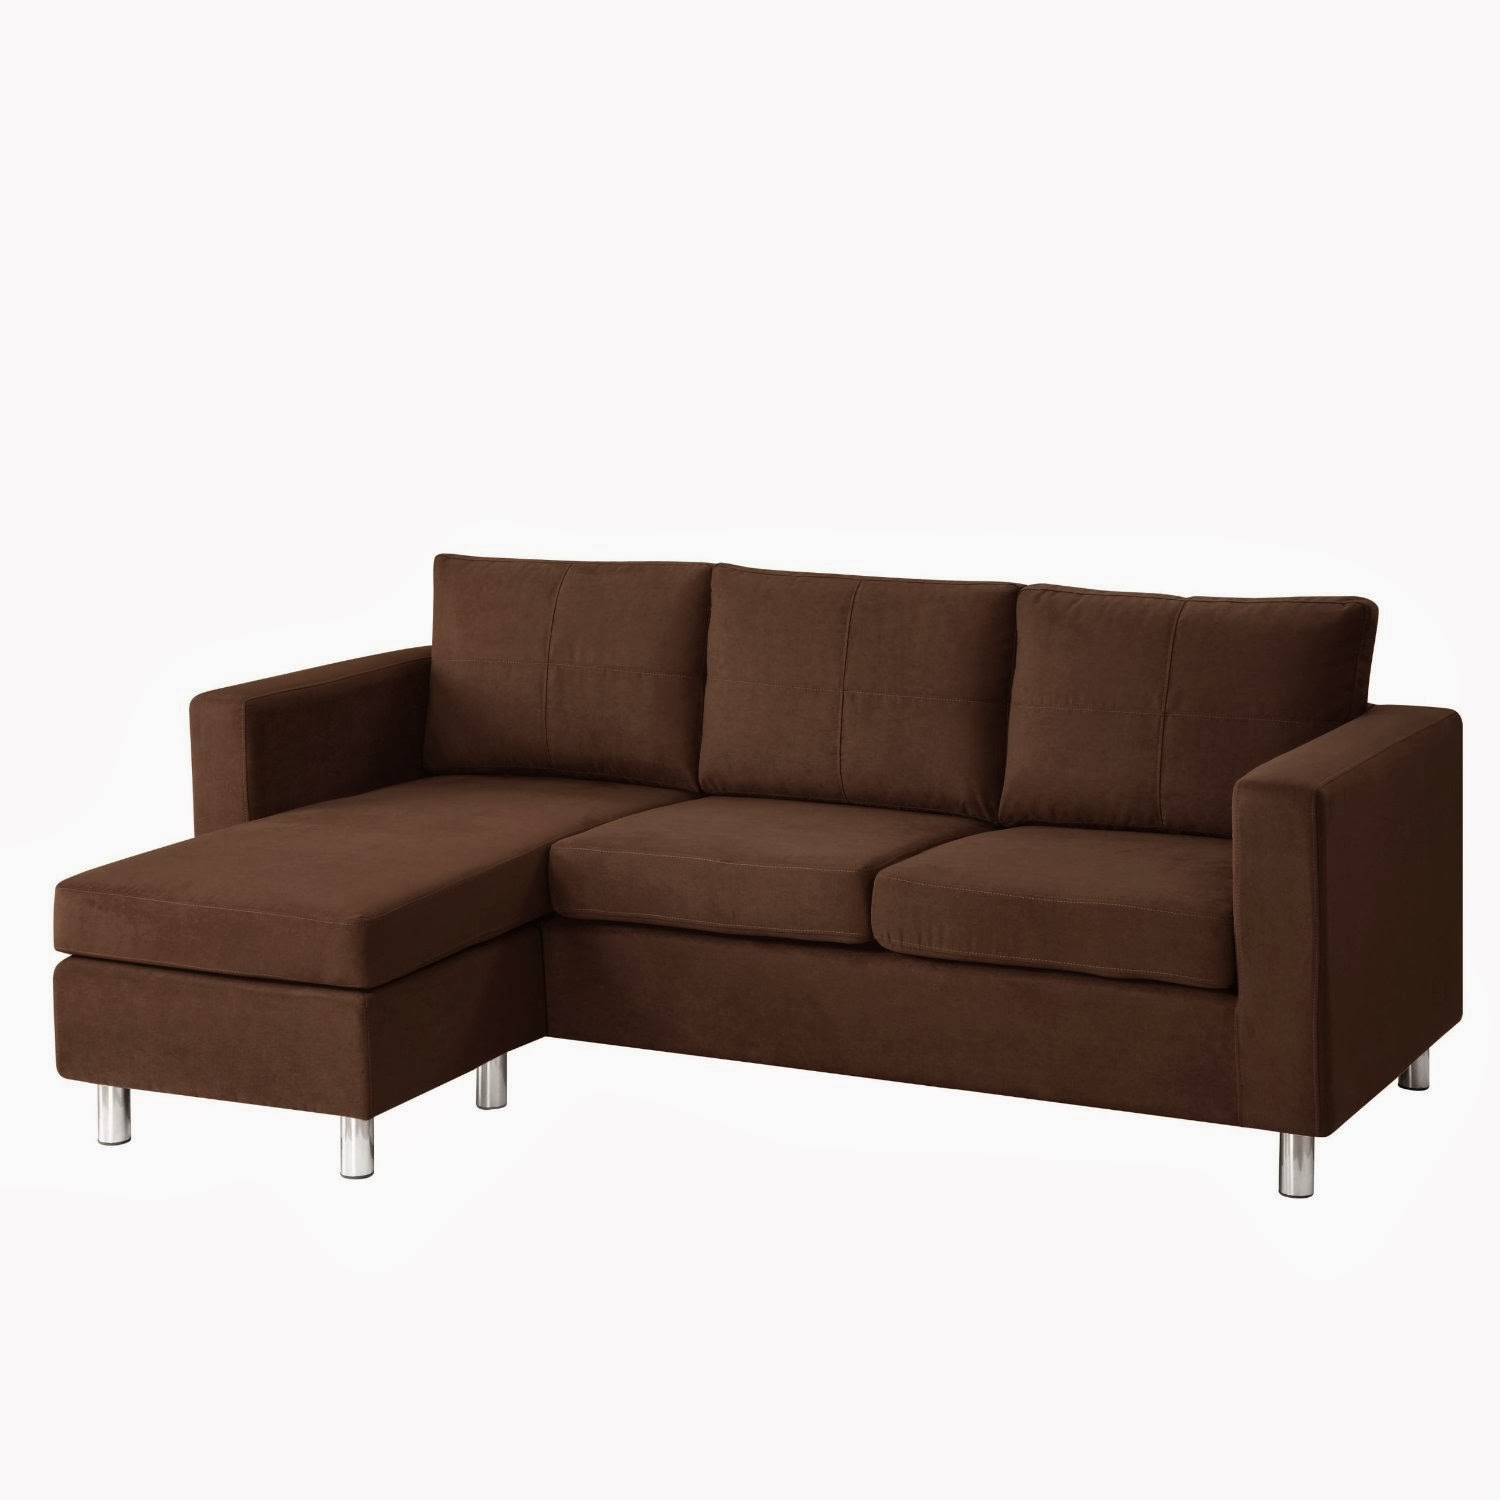 Sleeper Sofas For Small Areas Mid Century Sofa Legs Uk Sectional Reviews February 2014